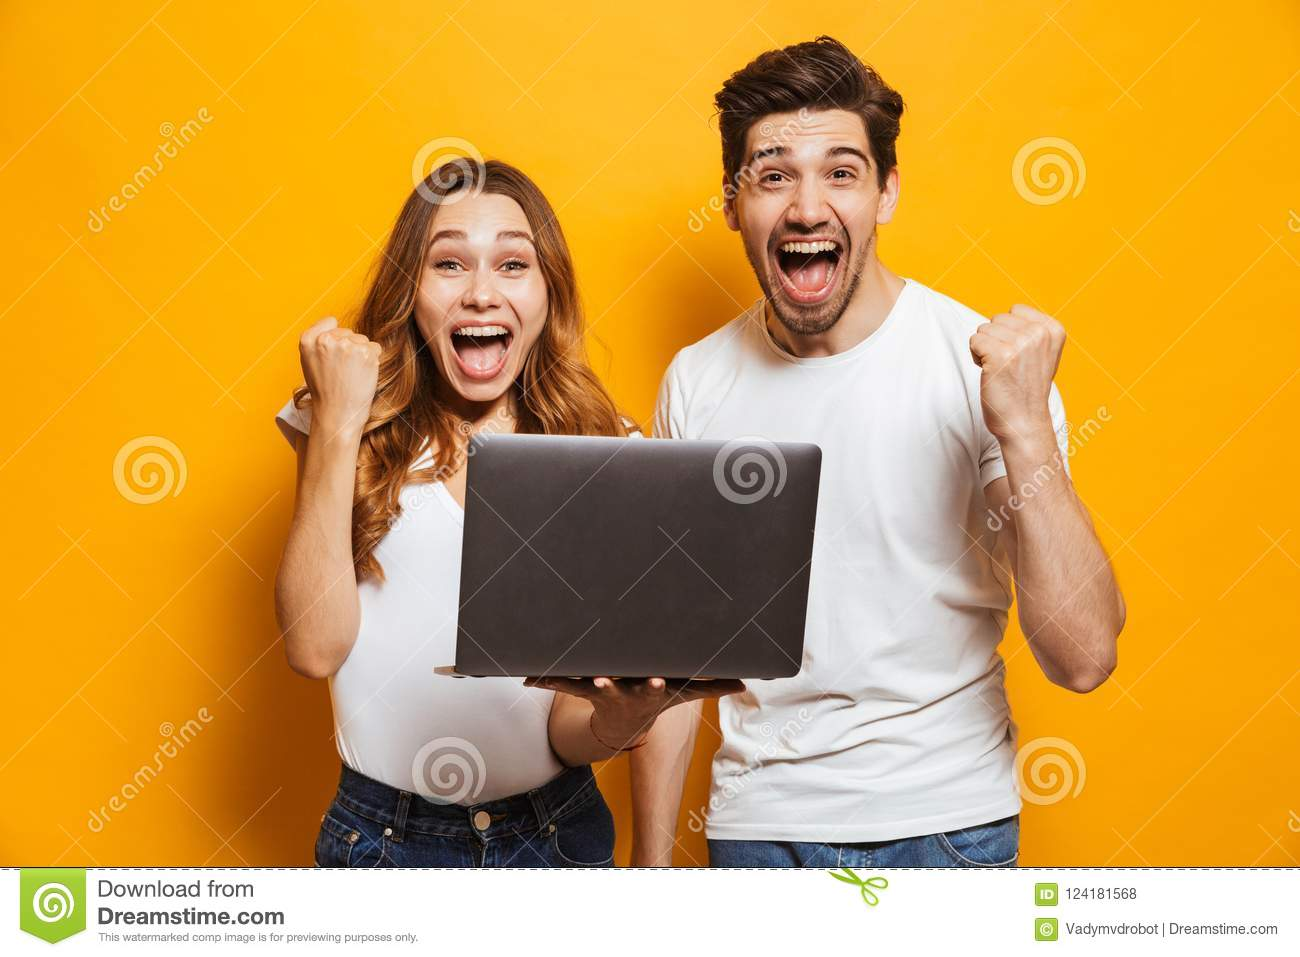 Portrait of excited man and woman screaming and clenching fists